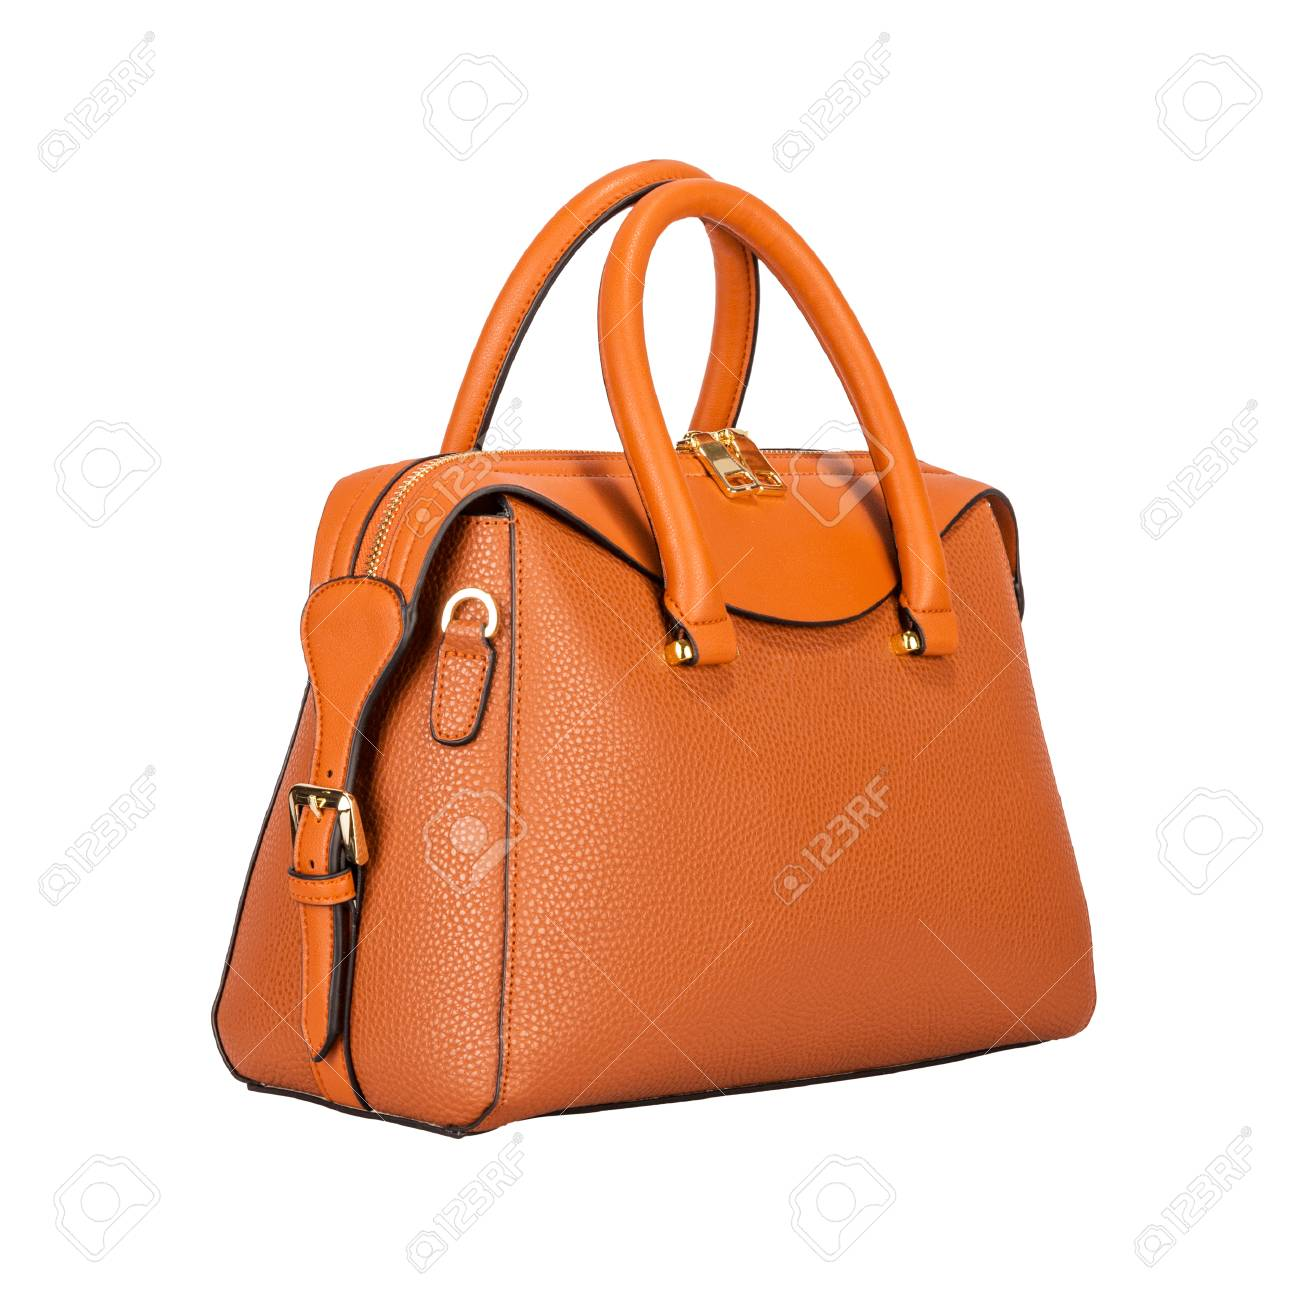 Fashionable light orange classic women s handbag of solid leather with  embossed stripes side view isolated on fa6ab16190fc8